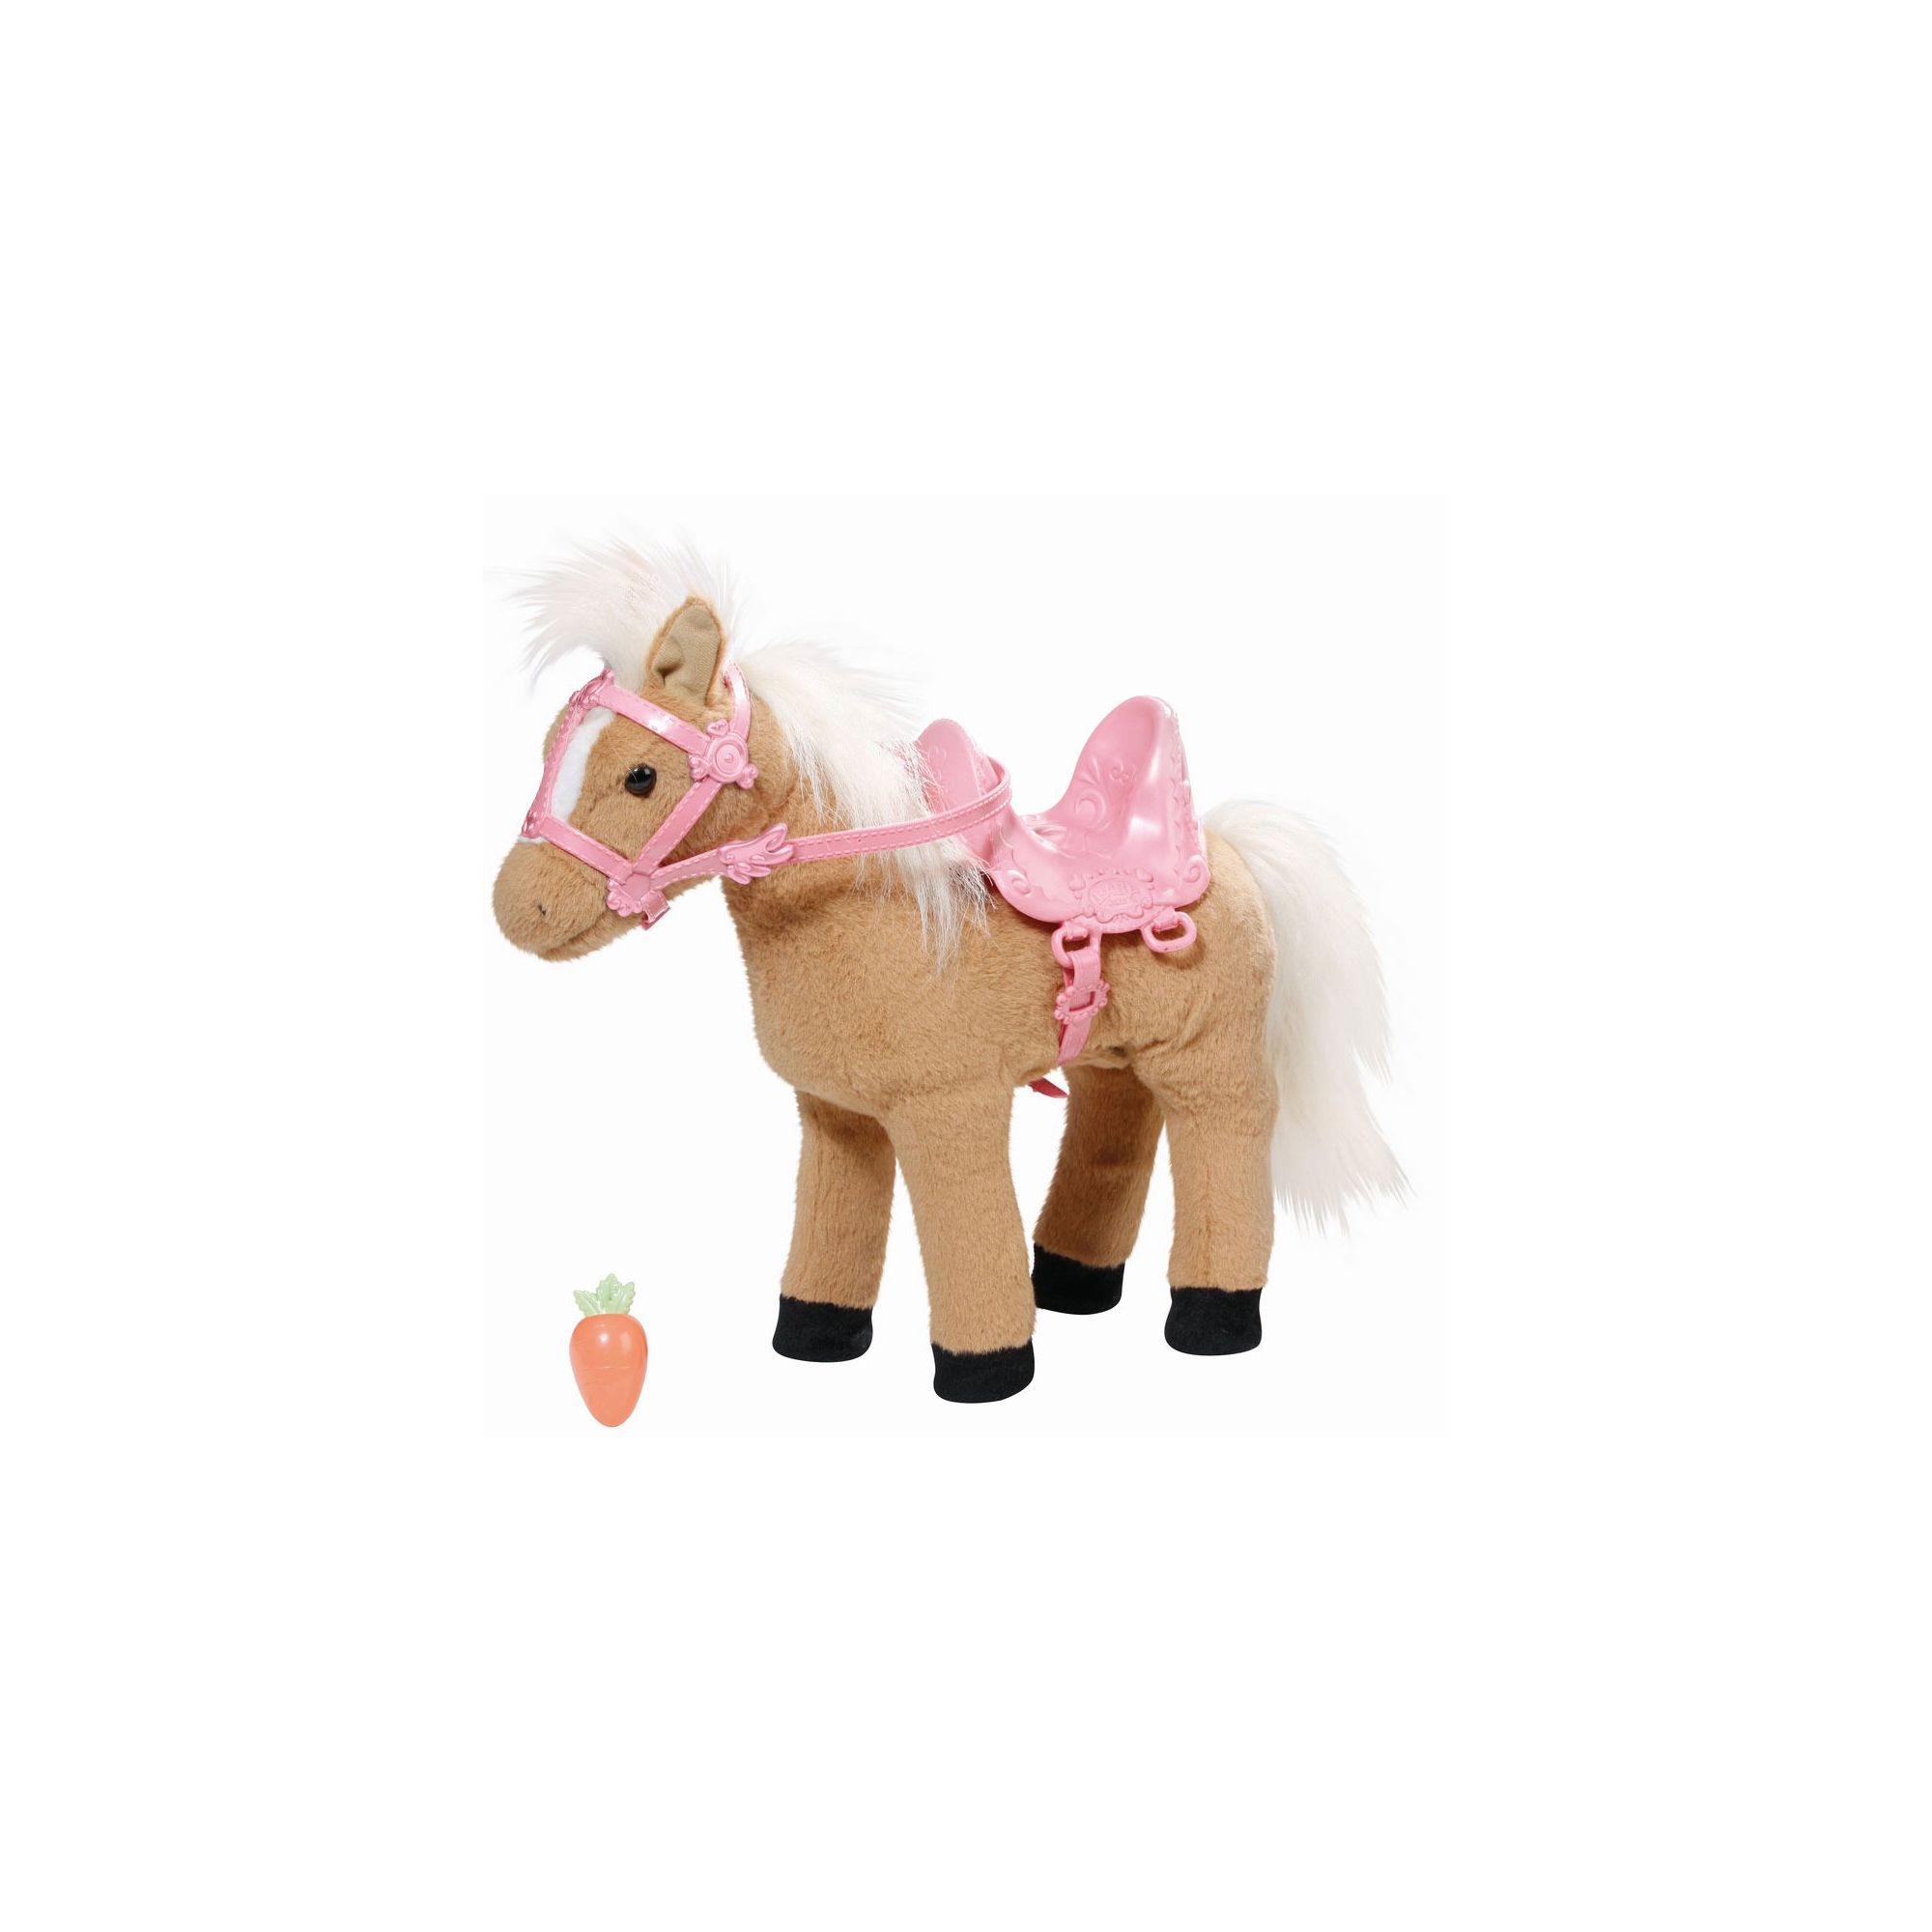 baby born interactive pony toys compare and save. Black Bedroom Furniture Sets. Home Design Ideas